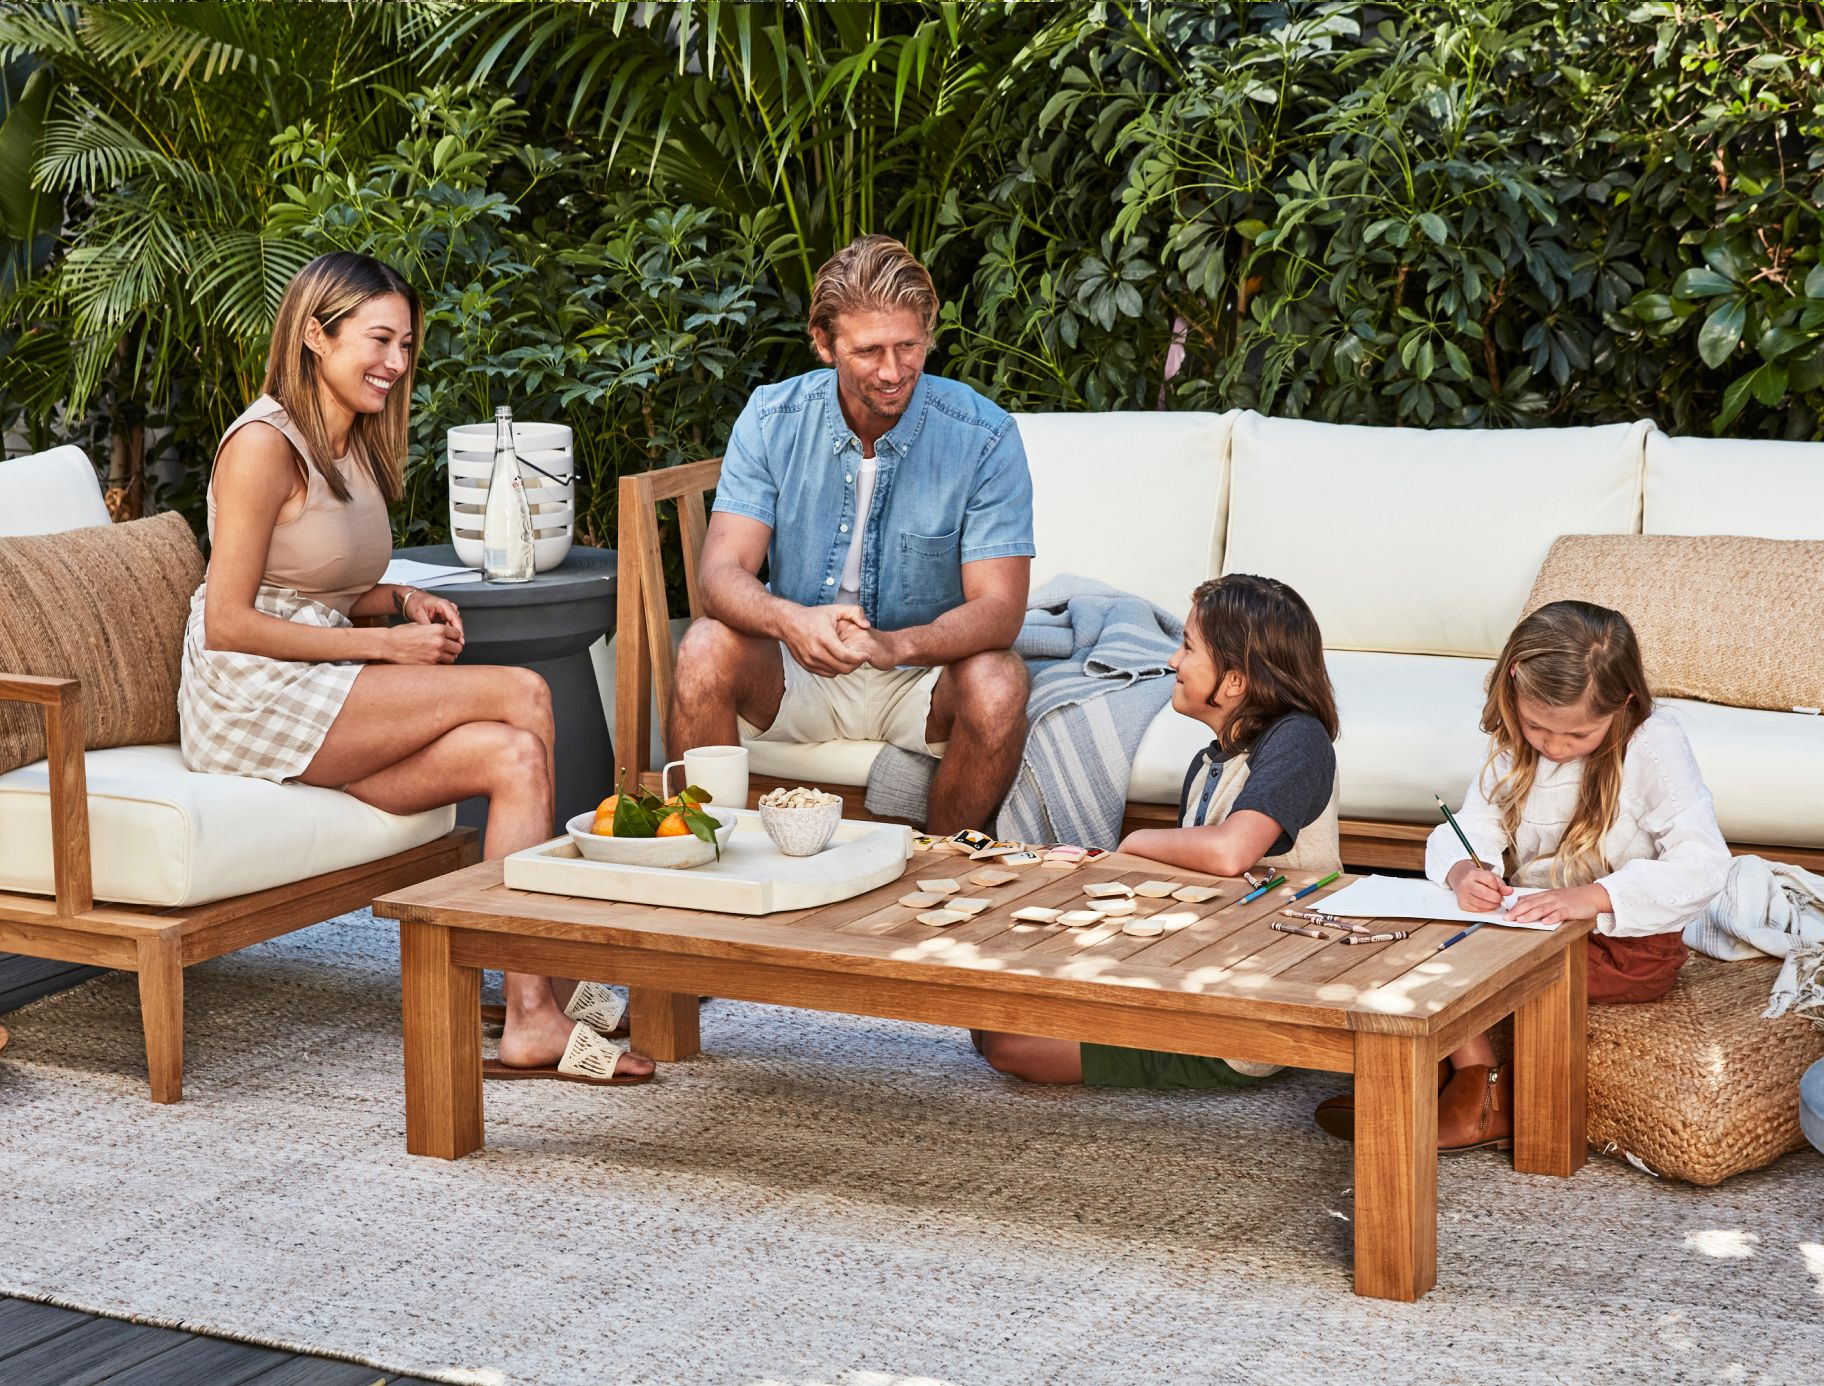 Patio Table Buying Guide: What To Look For When You Shop